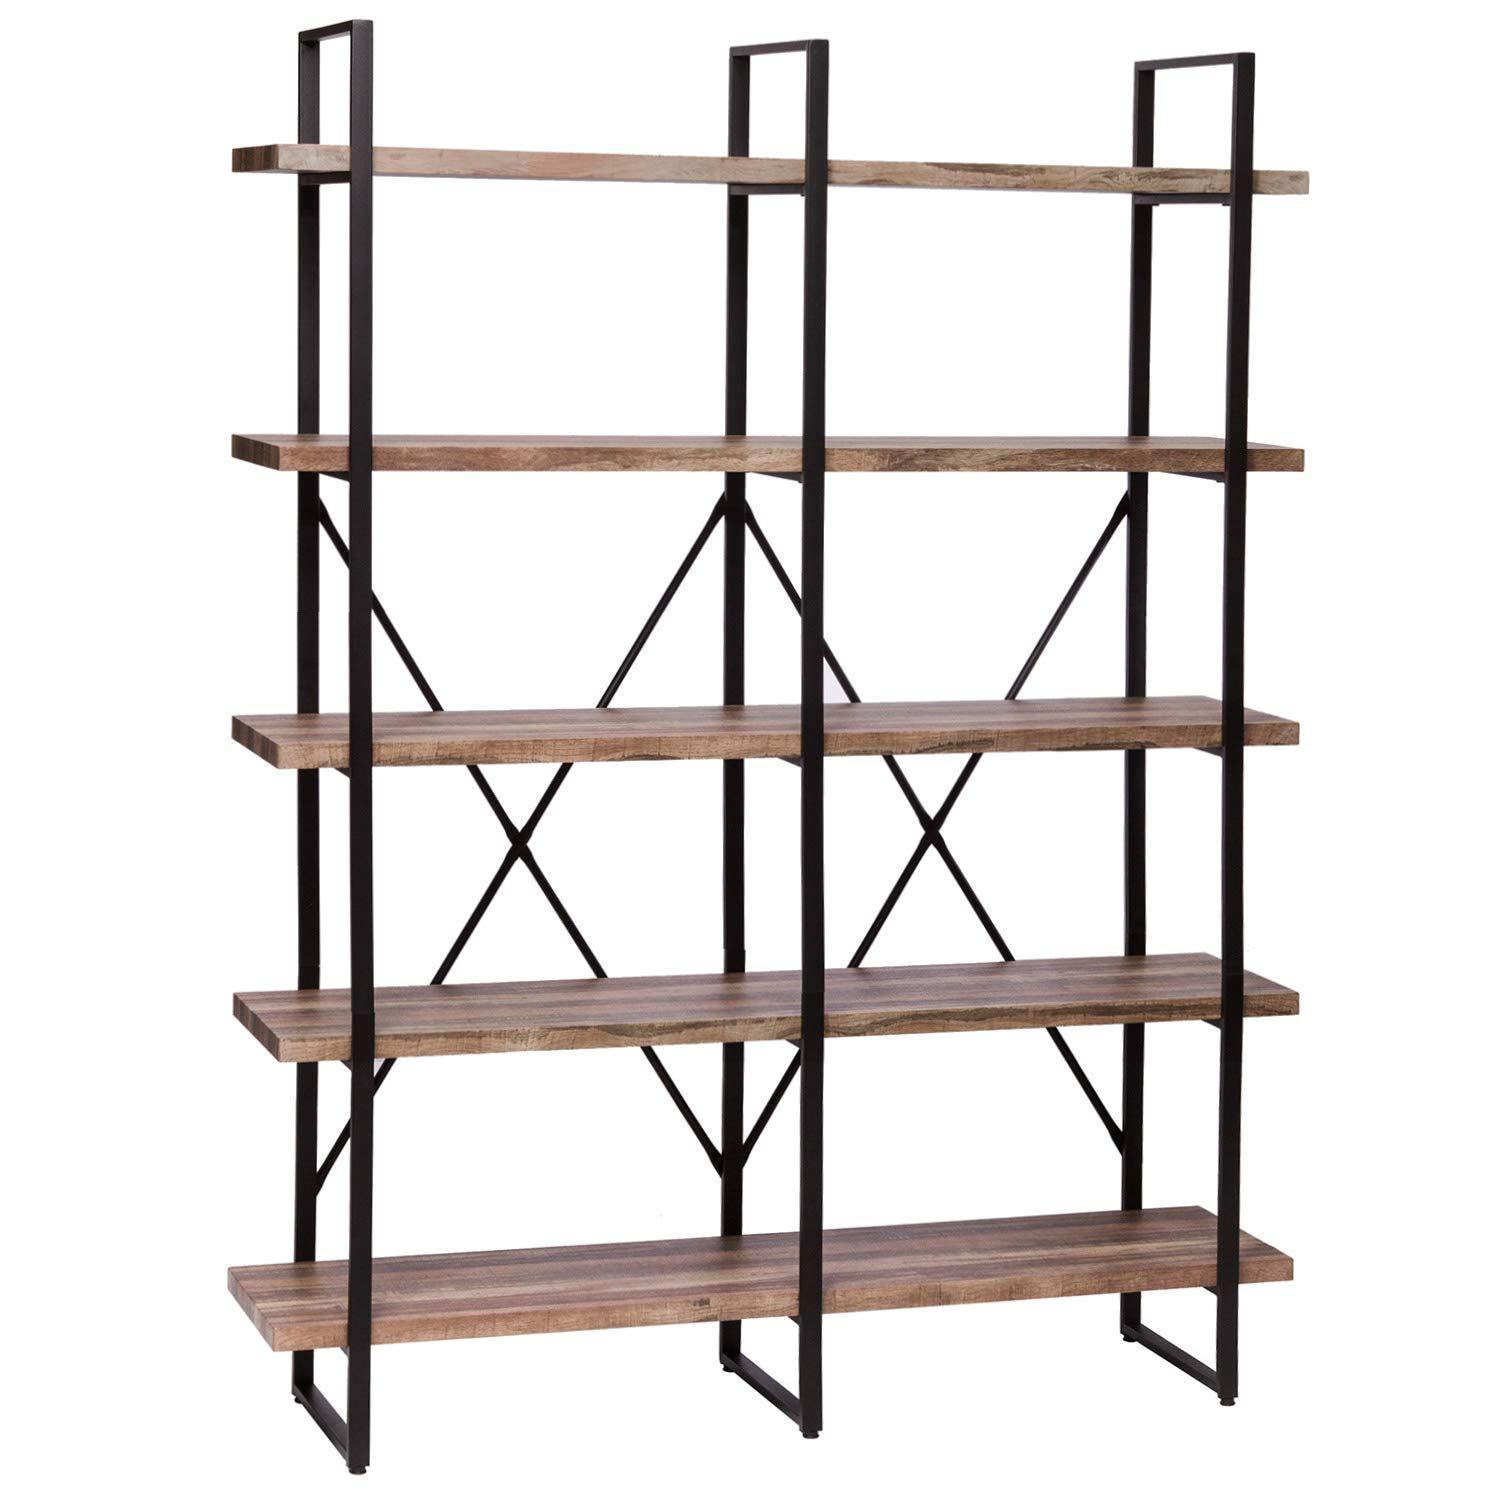 Ironck Bookshelf, Double Wide 5-tier Open Bookcase Vintage Industrial Large  Shelves, Wood And Metal Etagere Bookshelves, For Home Decor Display,